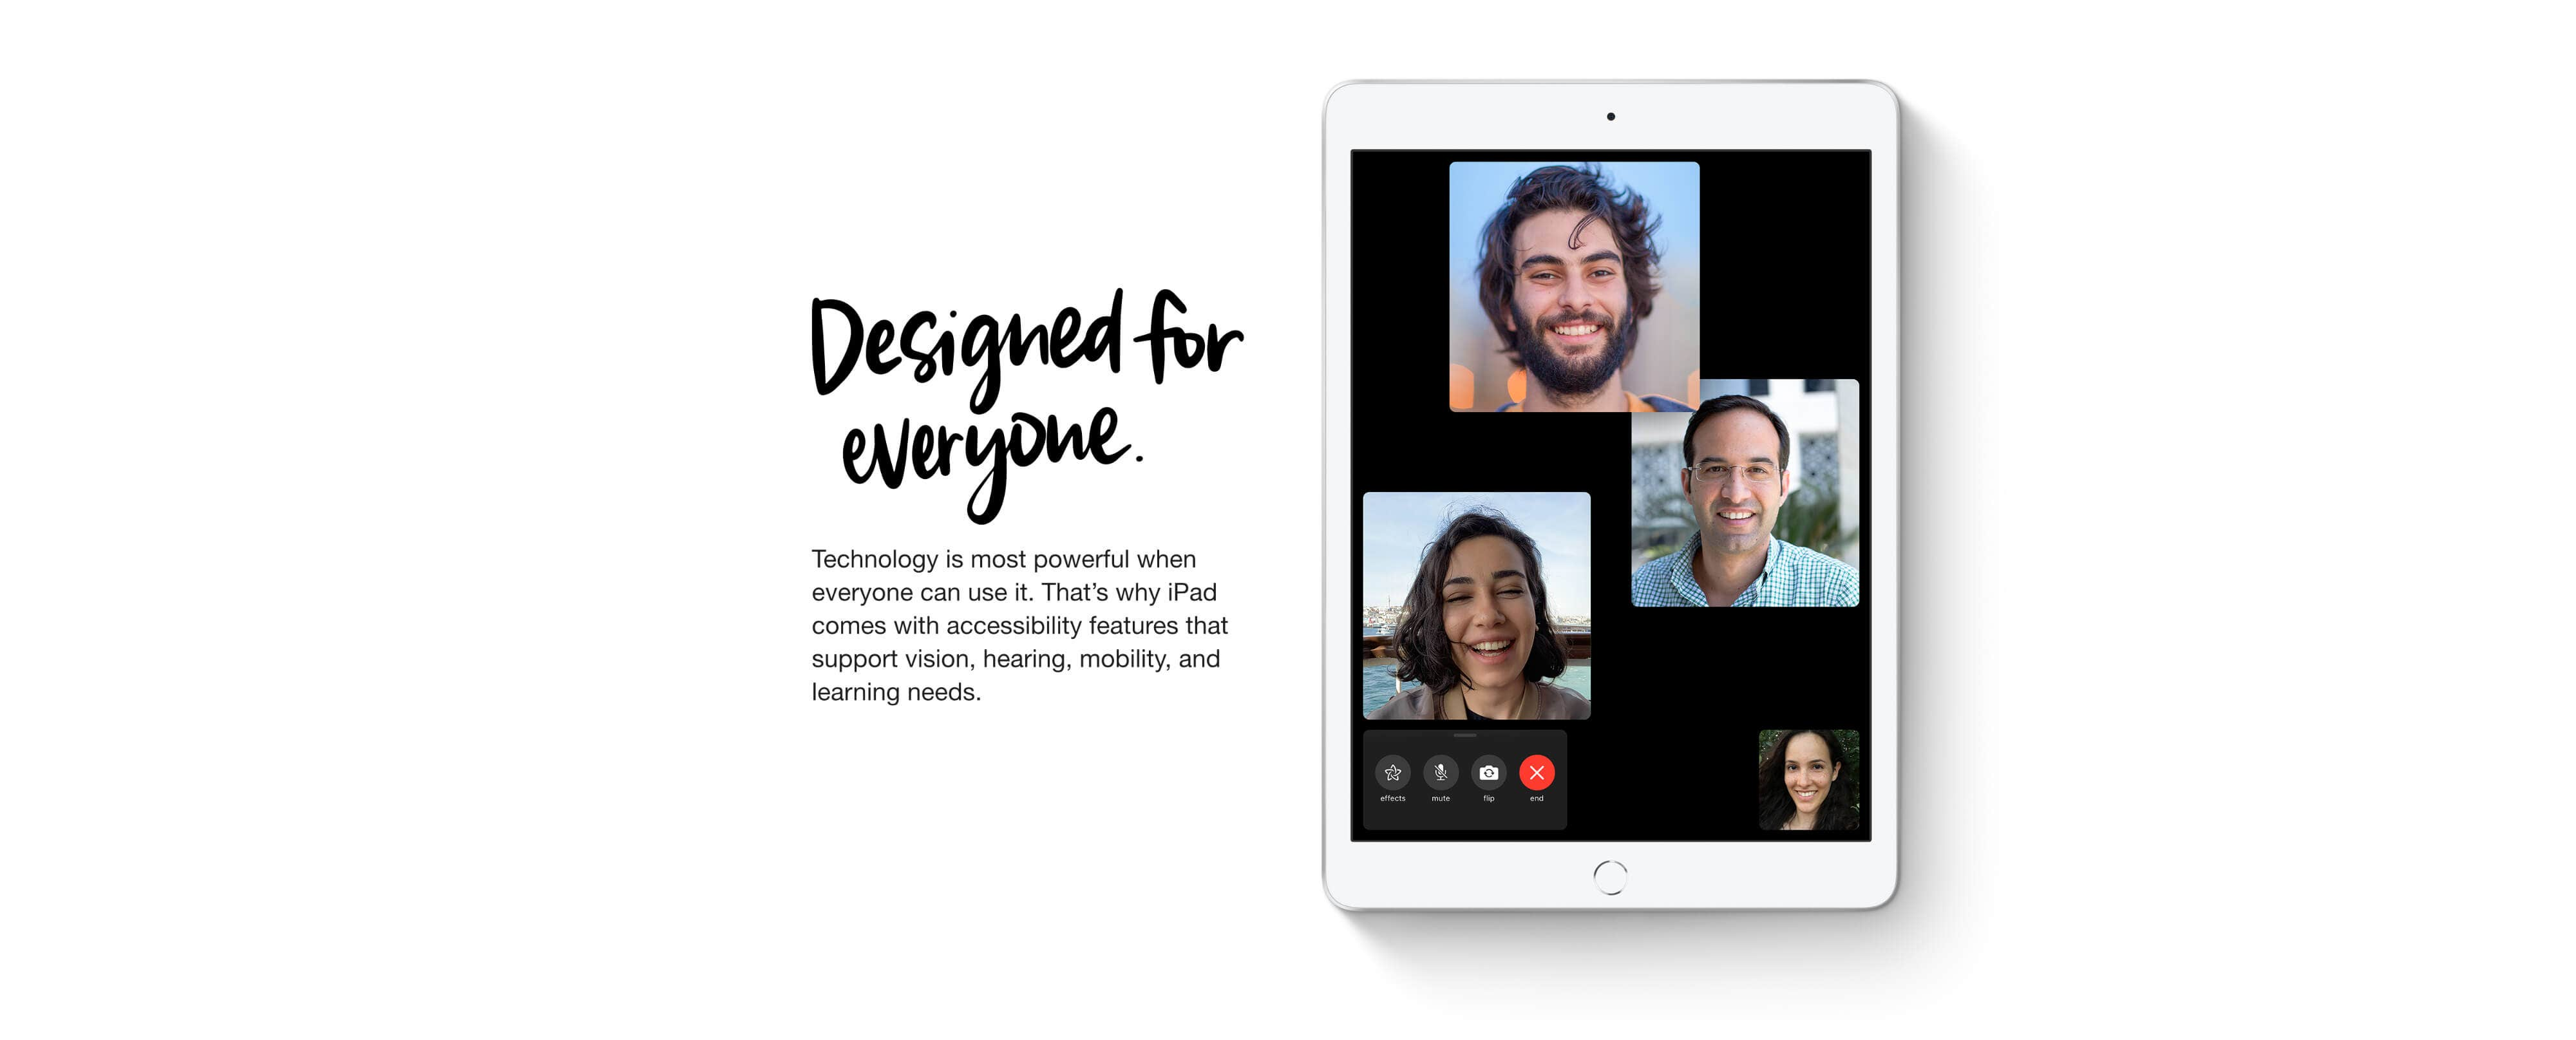 iPad 8th Generation -  Designed for everyone.